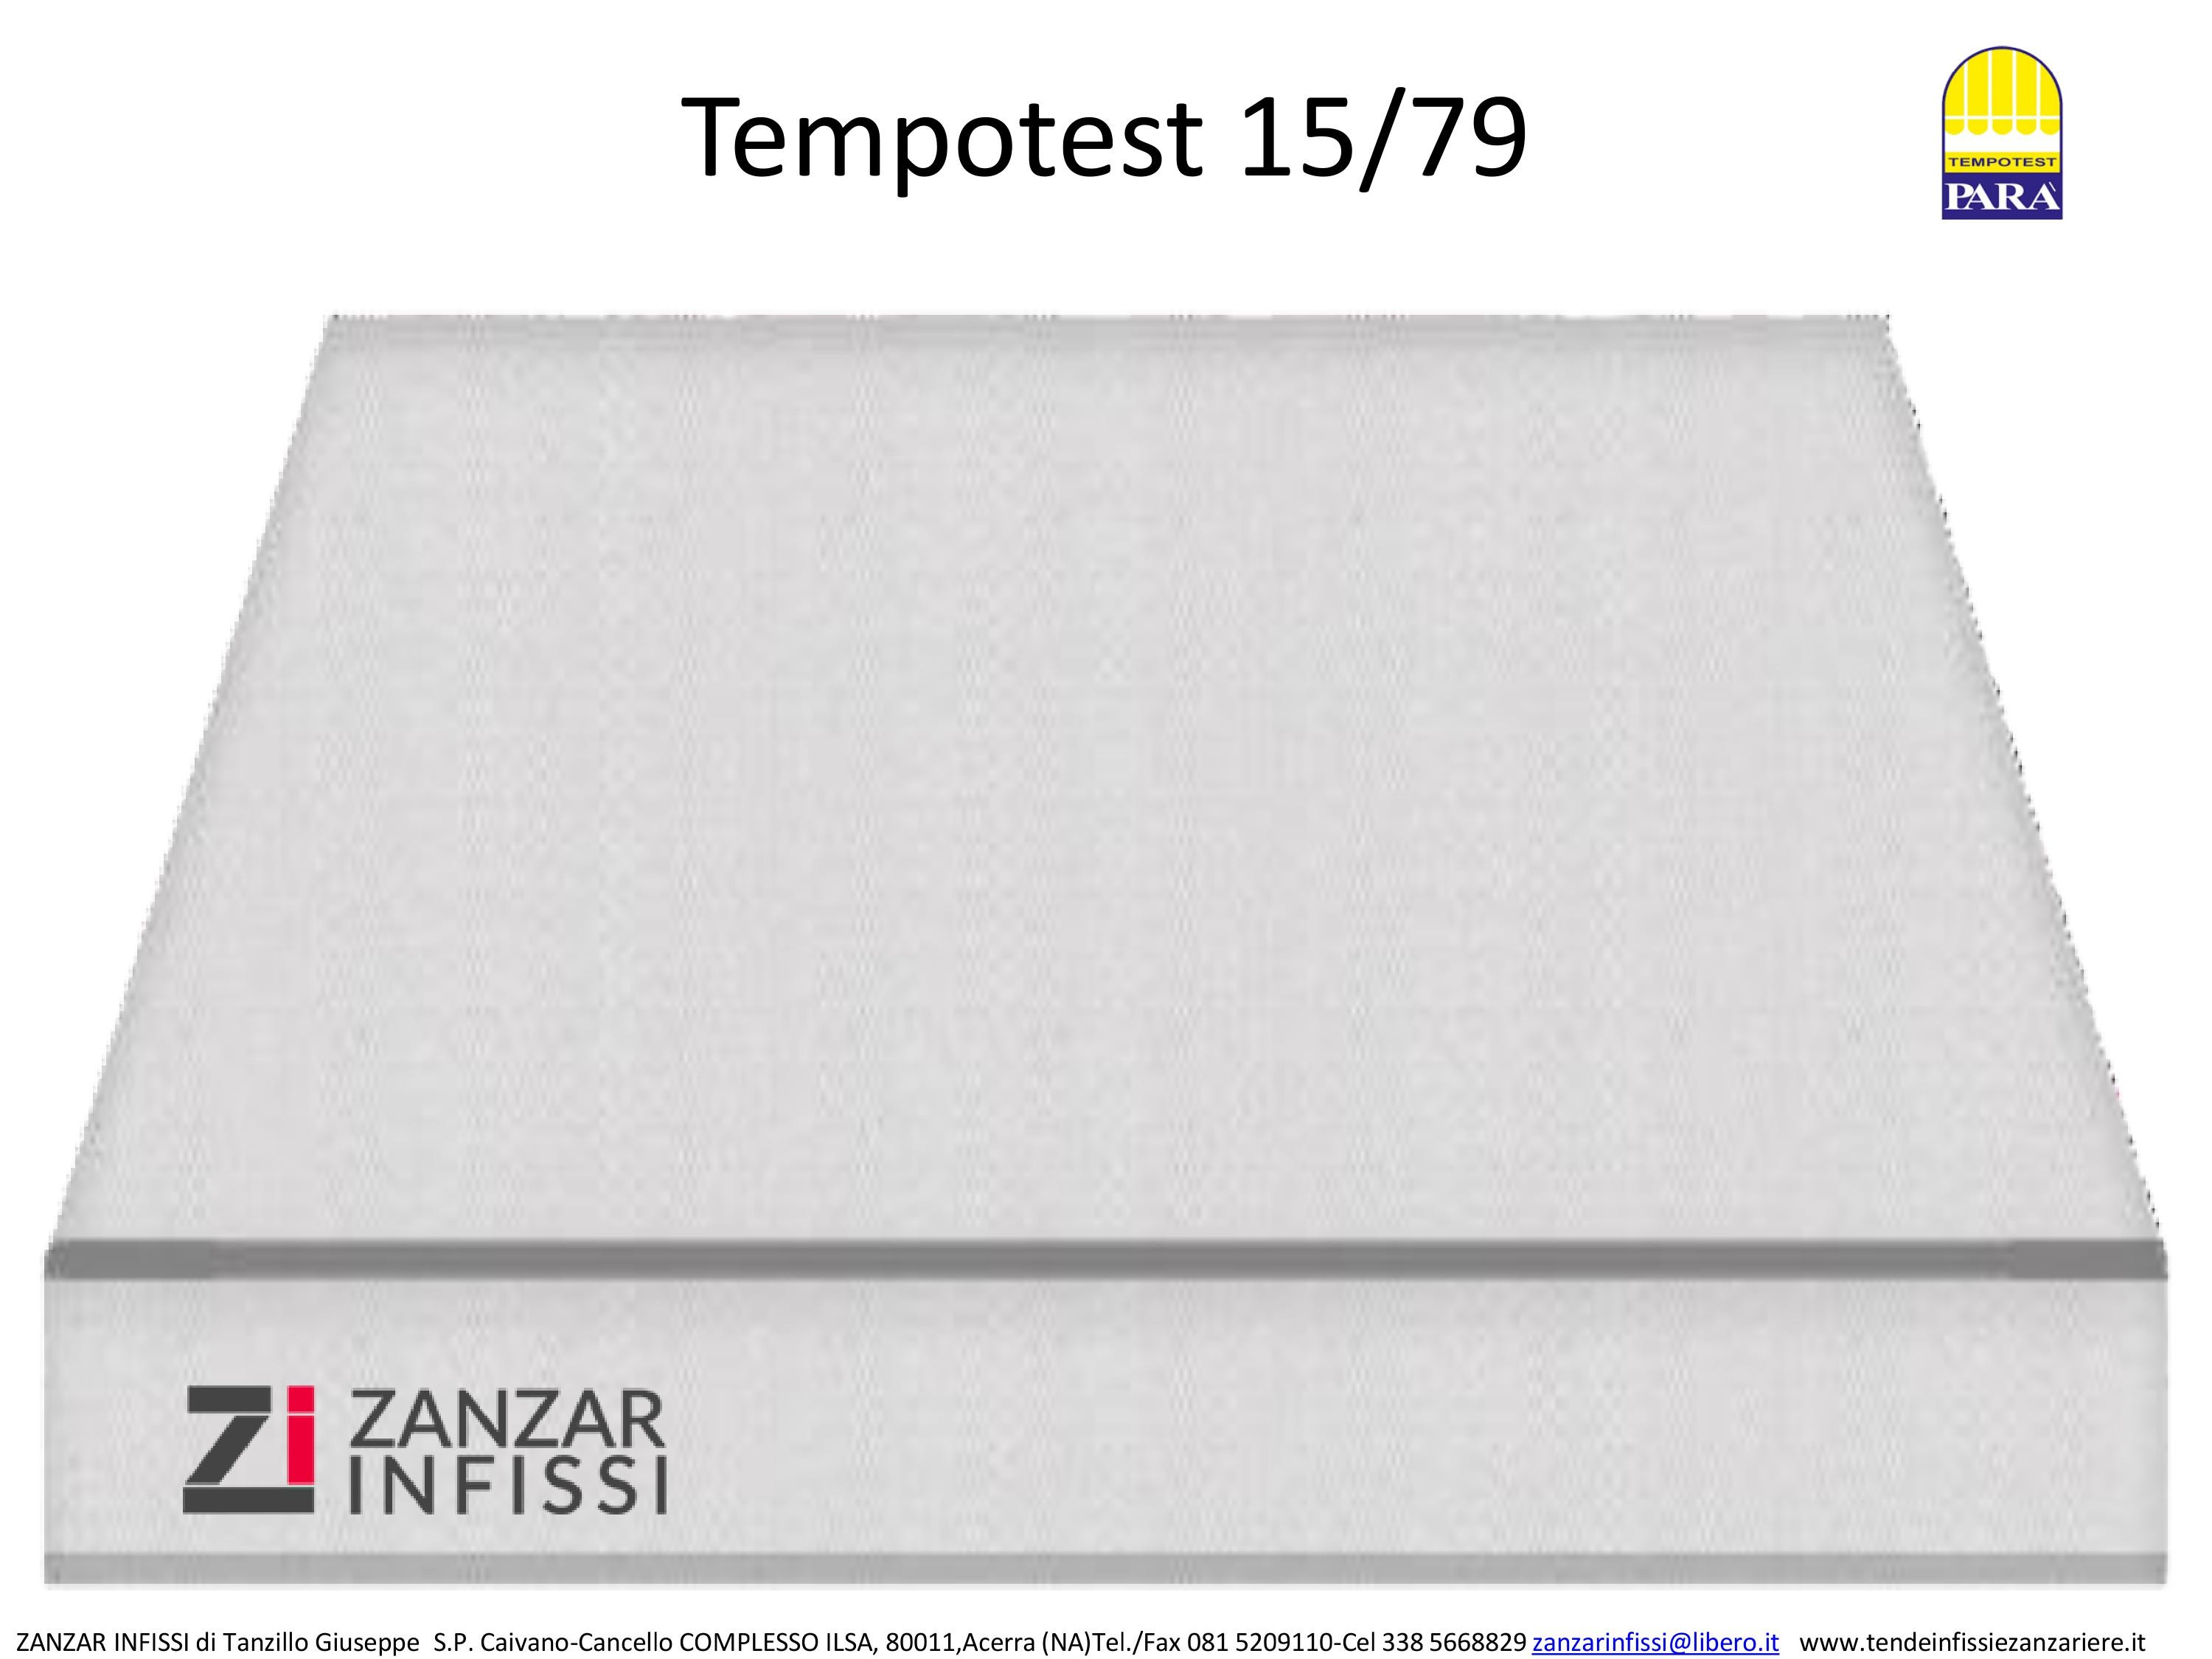 Tempotest 15/79